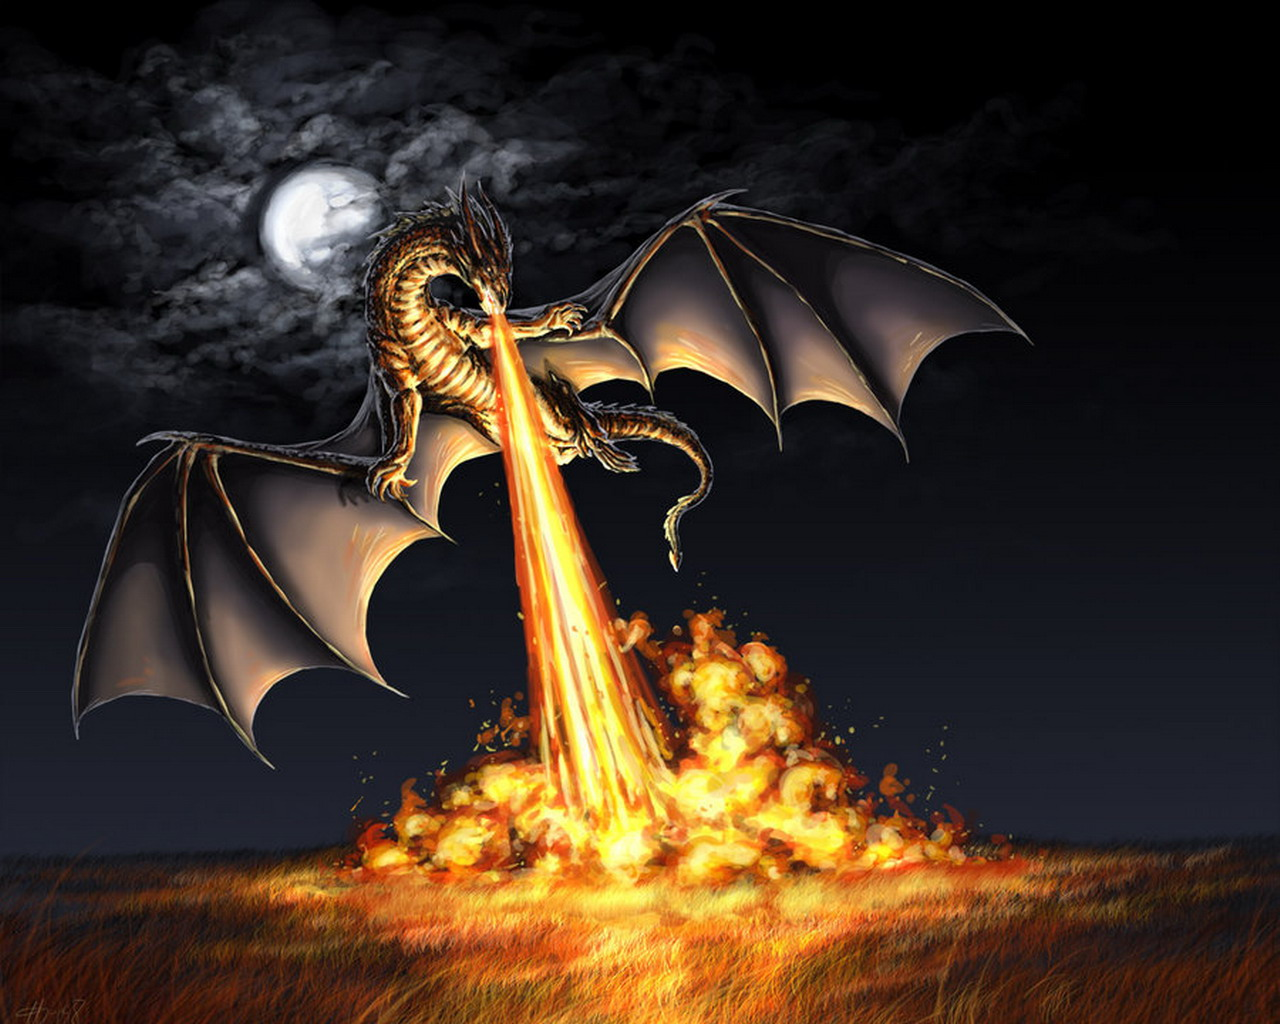 http://1.bp.blogspot.com/-Wm-X2lspuu0/UP1JmwnCmDI/AAAAAAAAALk/12h0Qd7ZhF8/s1600/Dragon+Fire+Attack+photo.jpg